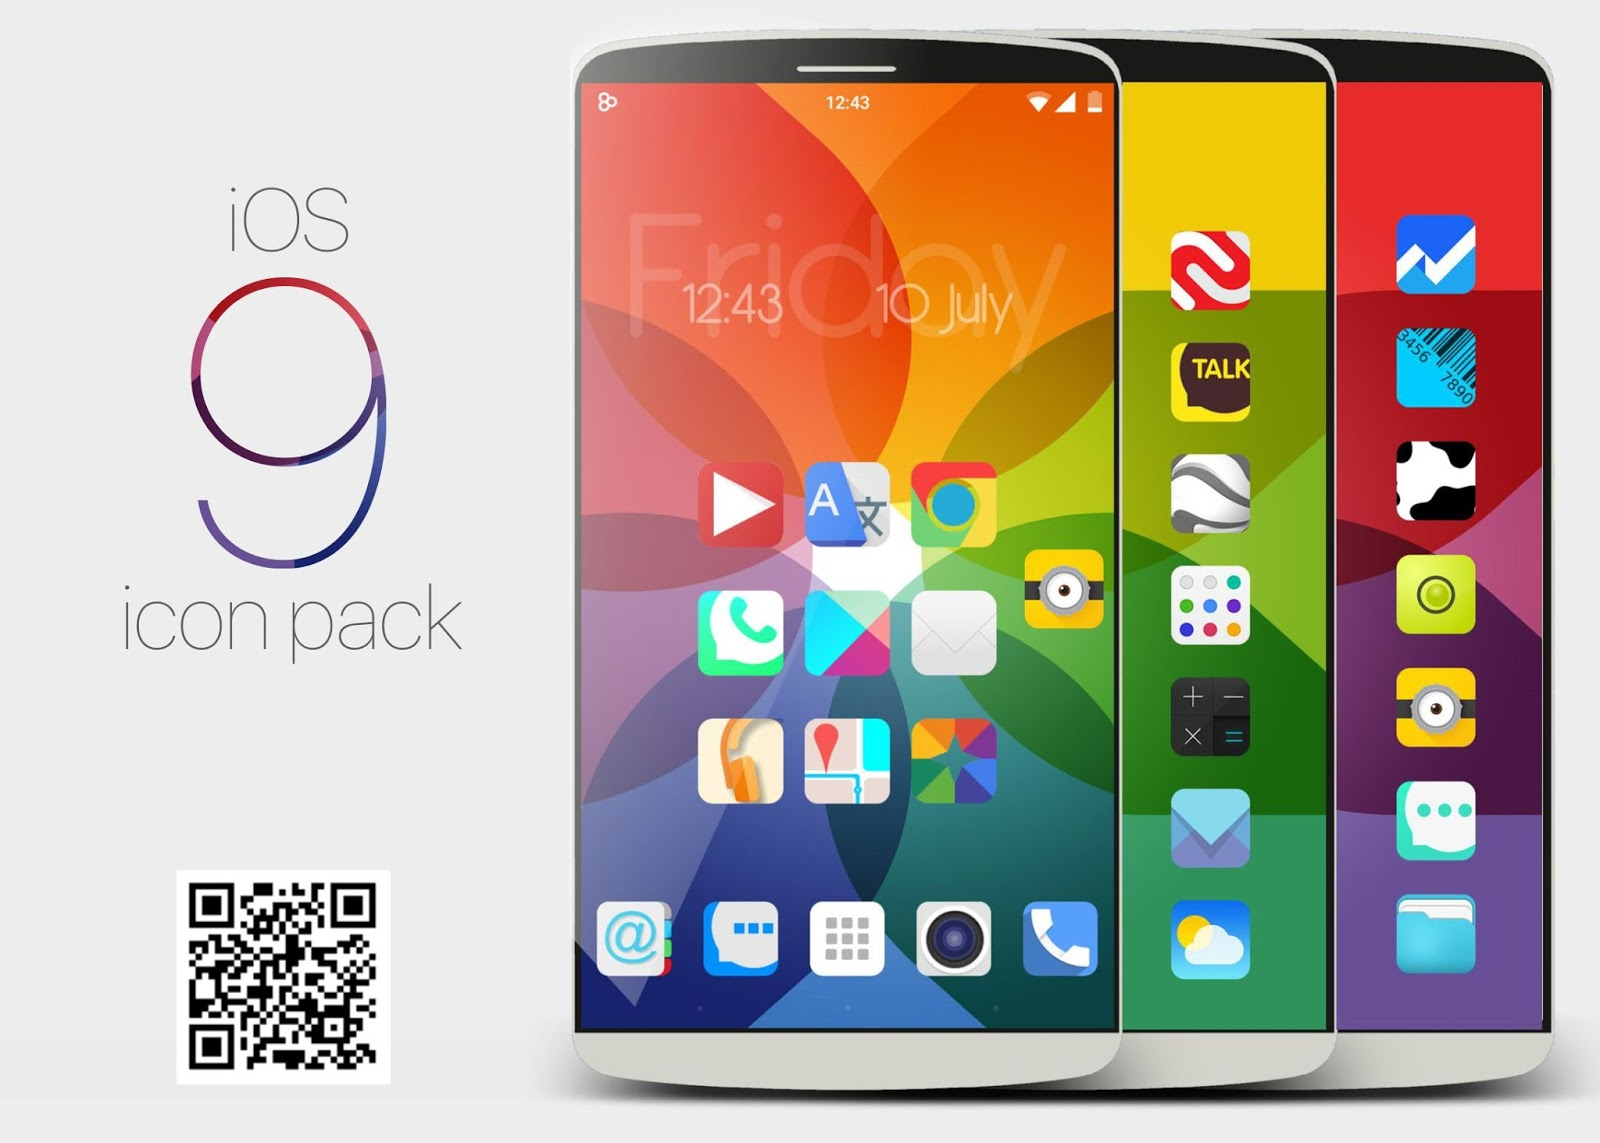 ios launcher wallpaper: Icon Pack Android: Iphone Ios9 Concept Theme To Android